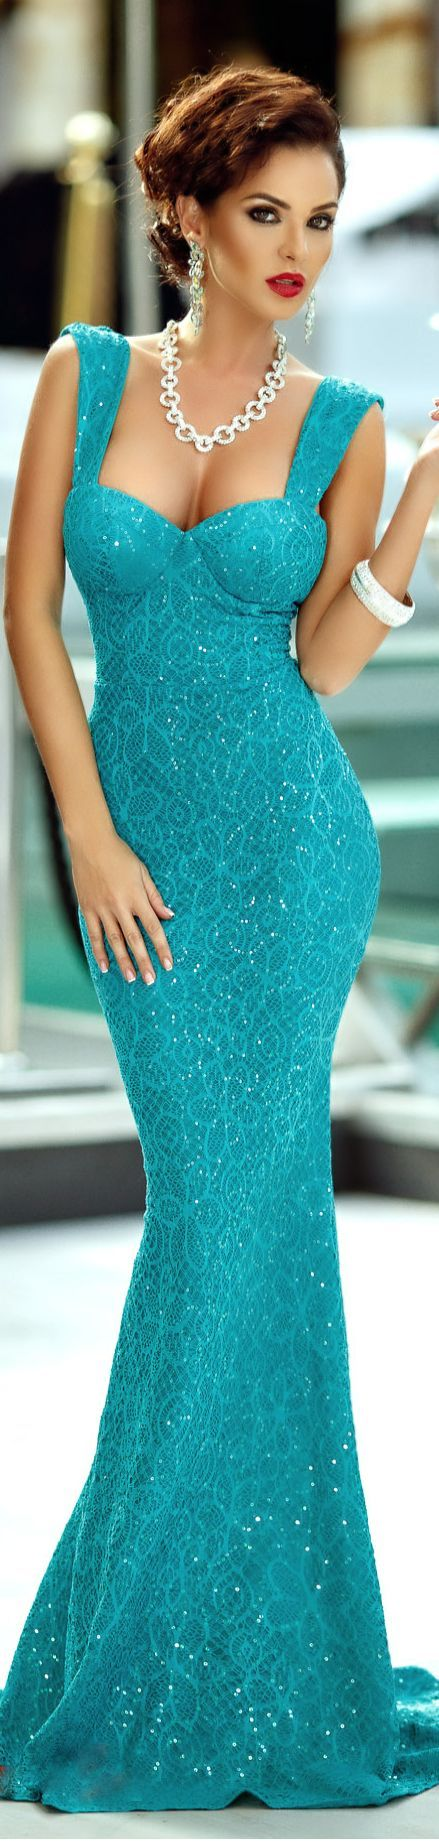 dress with sequined lace turquoise